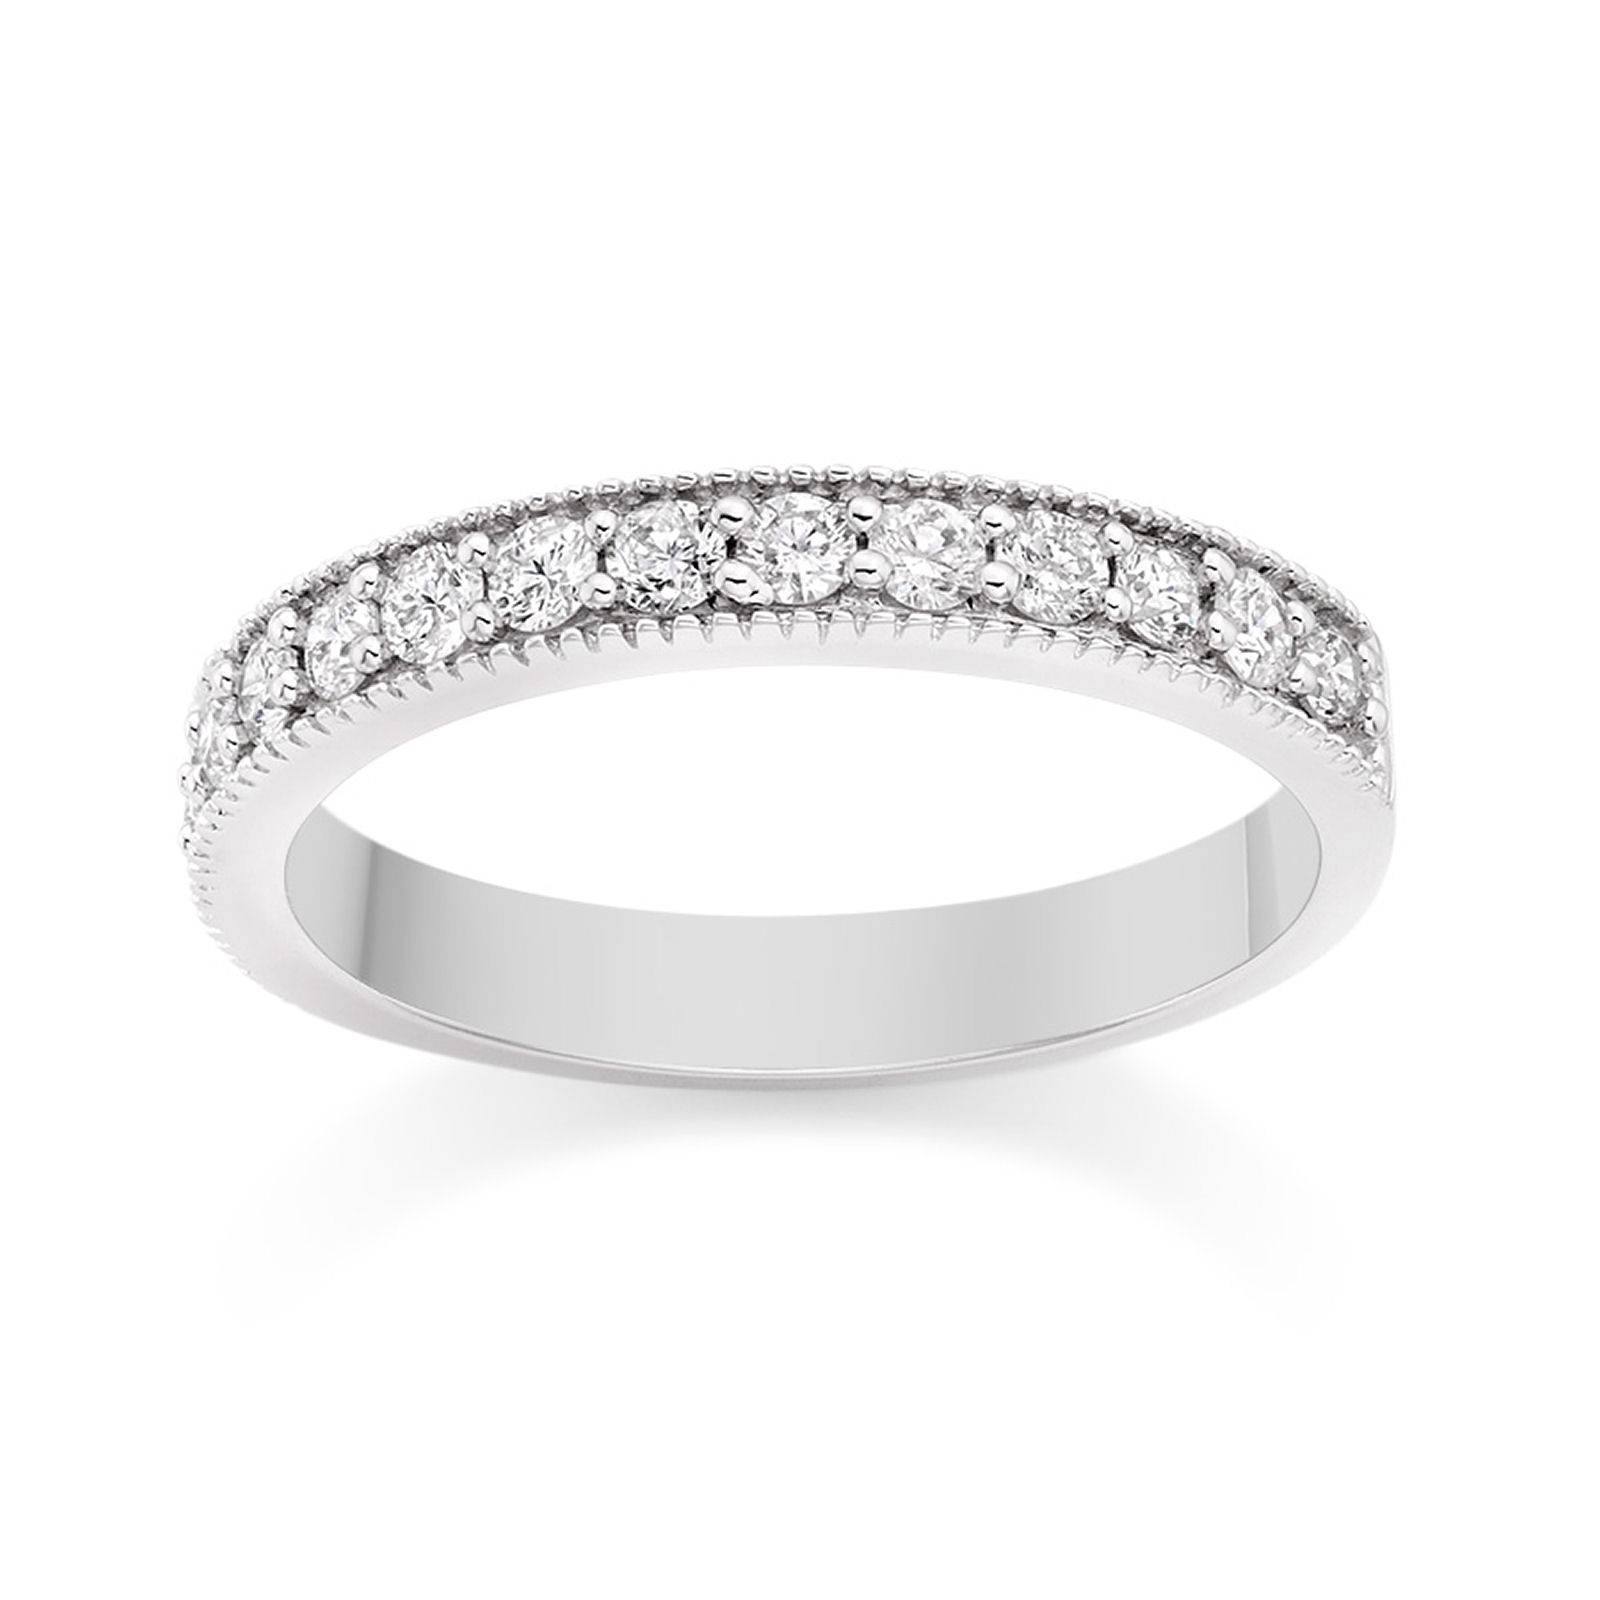 Milgrain Diamond Wedding Ring In Platinum Wedding Dress From Throughout Most Recently Released Platinum Diamond Wedding Bands (View 8 of 15)